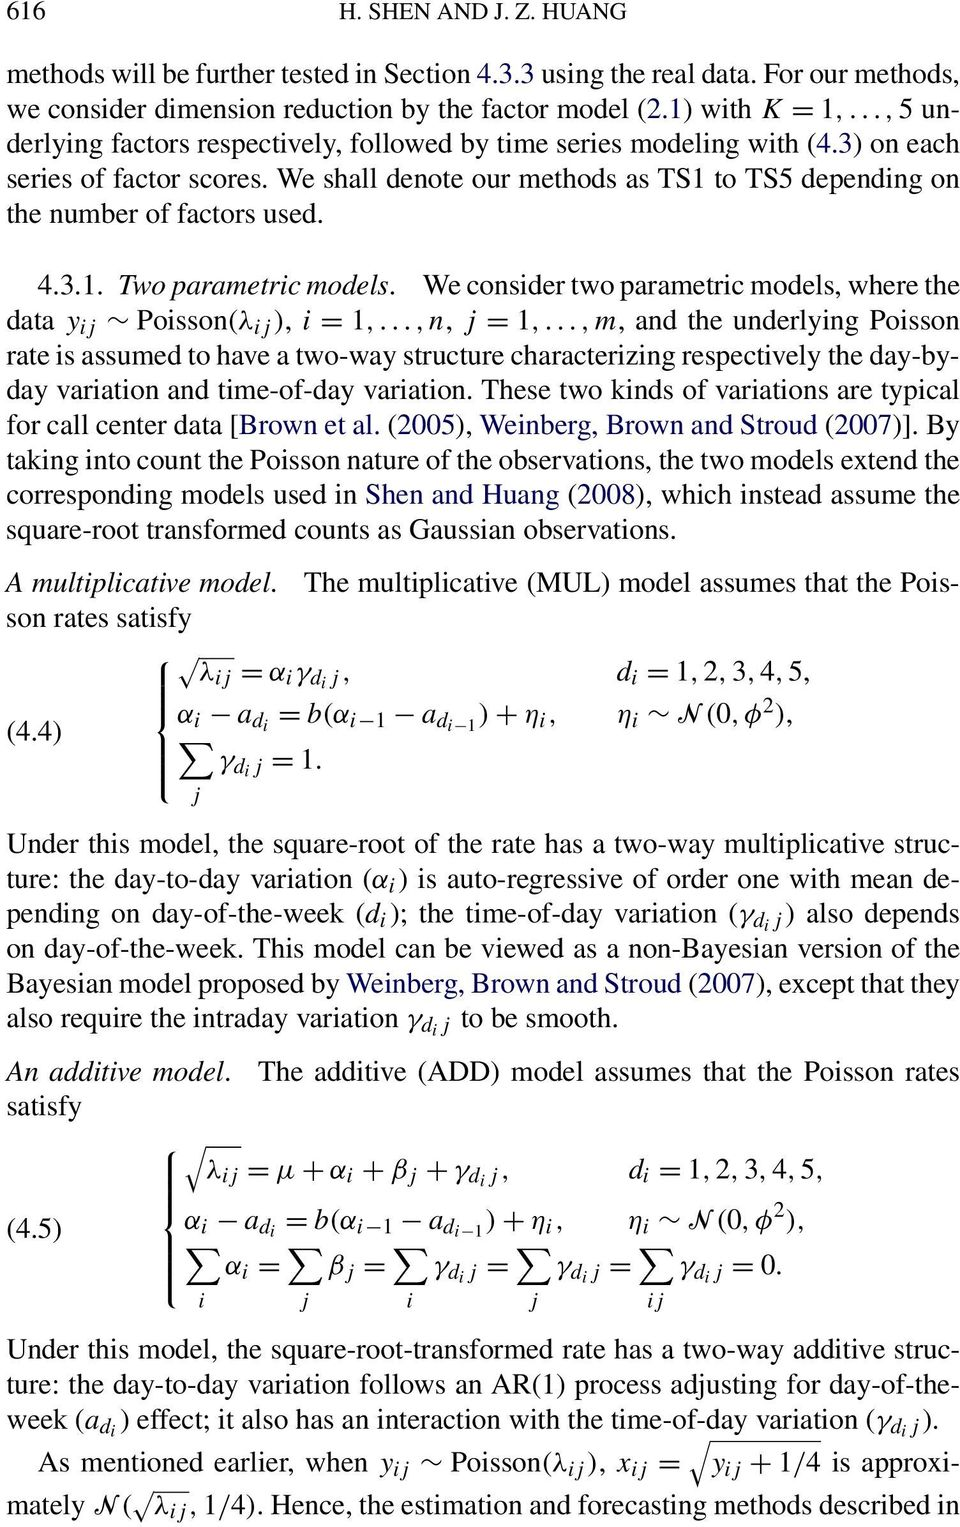 3.1. Two parametric models. We consider two parametric models, where the data y ij Poisson(λ ij ), i = 1,...,n, j = 1,.